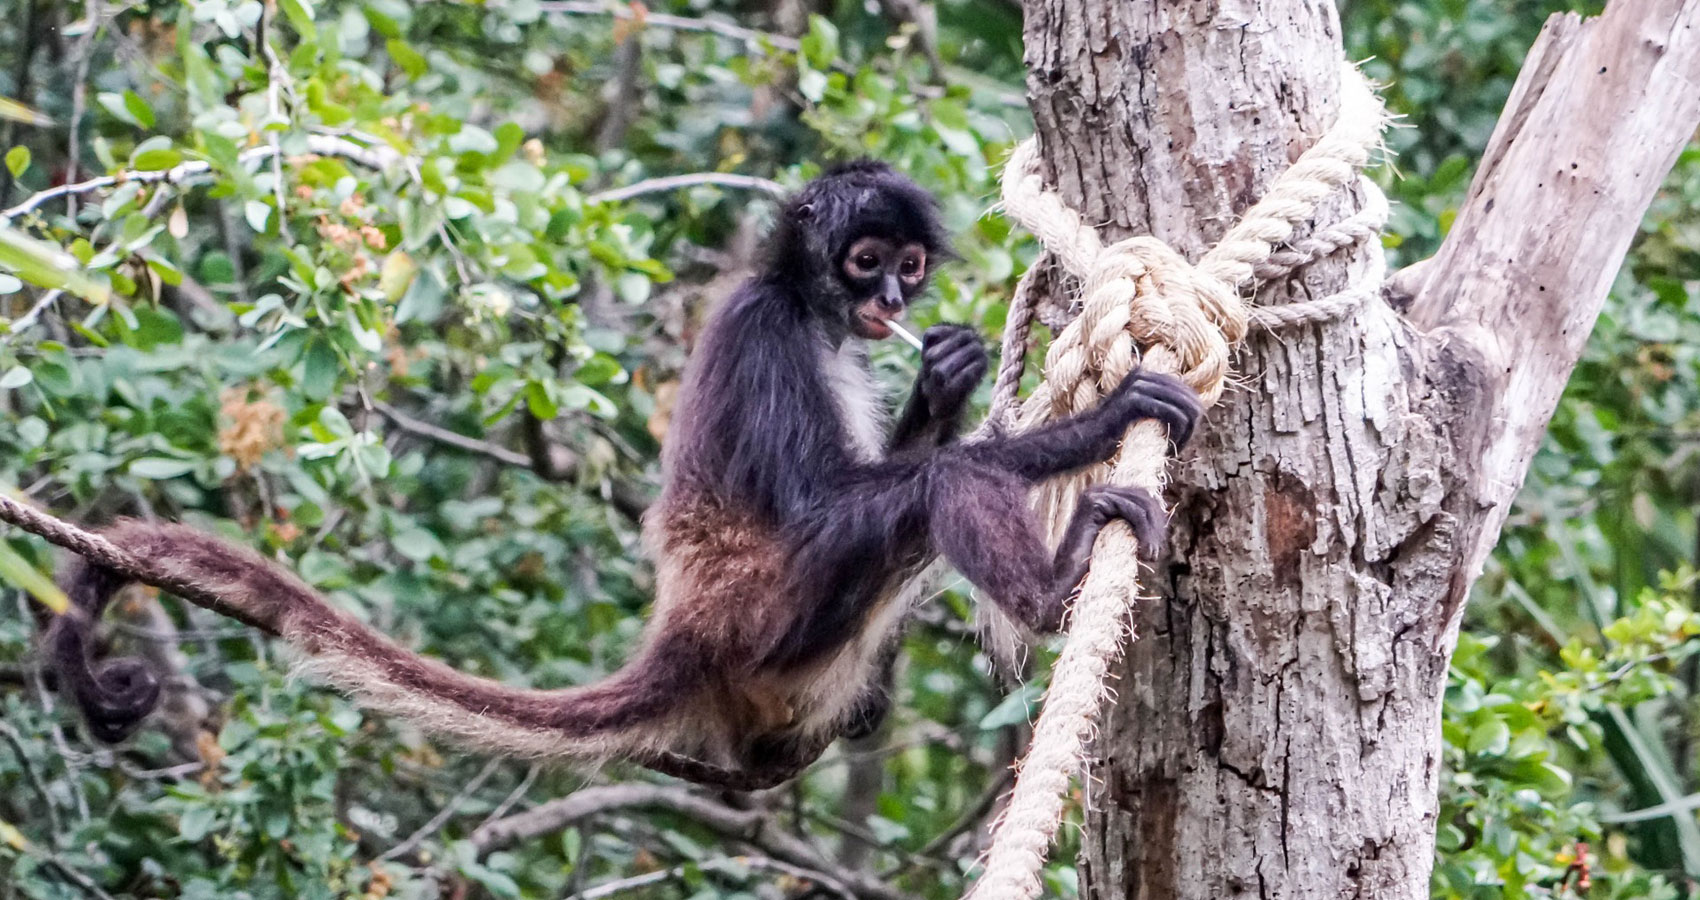 Dangling Monkeys, micropoetry written by Mary Bone at Spillwords.com